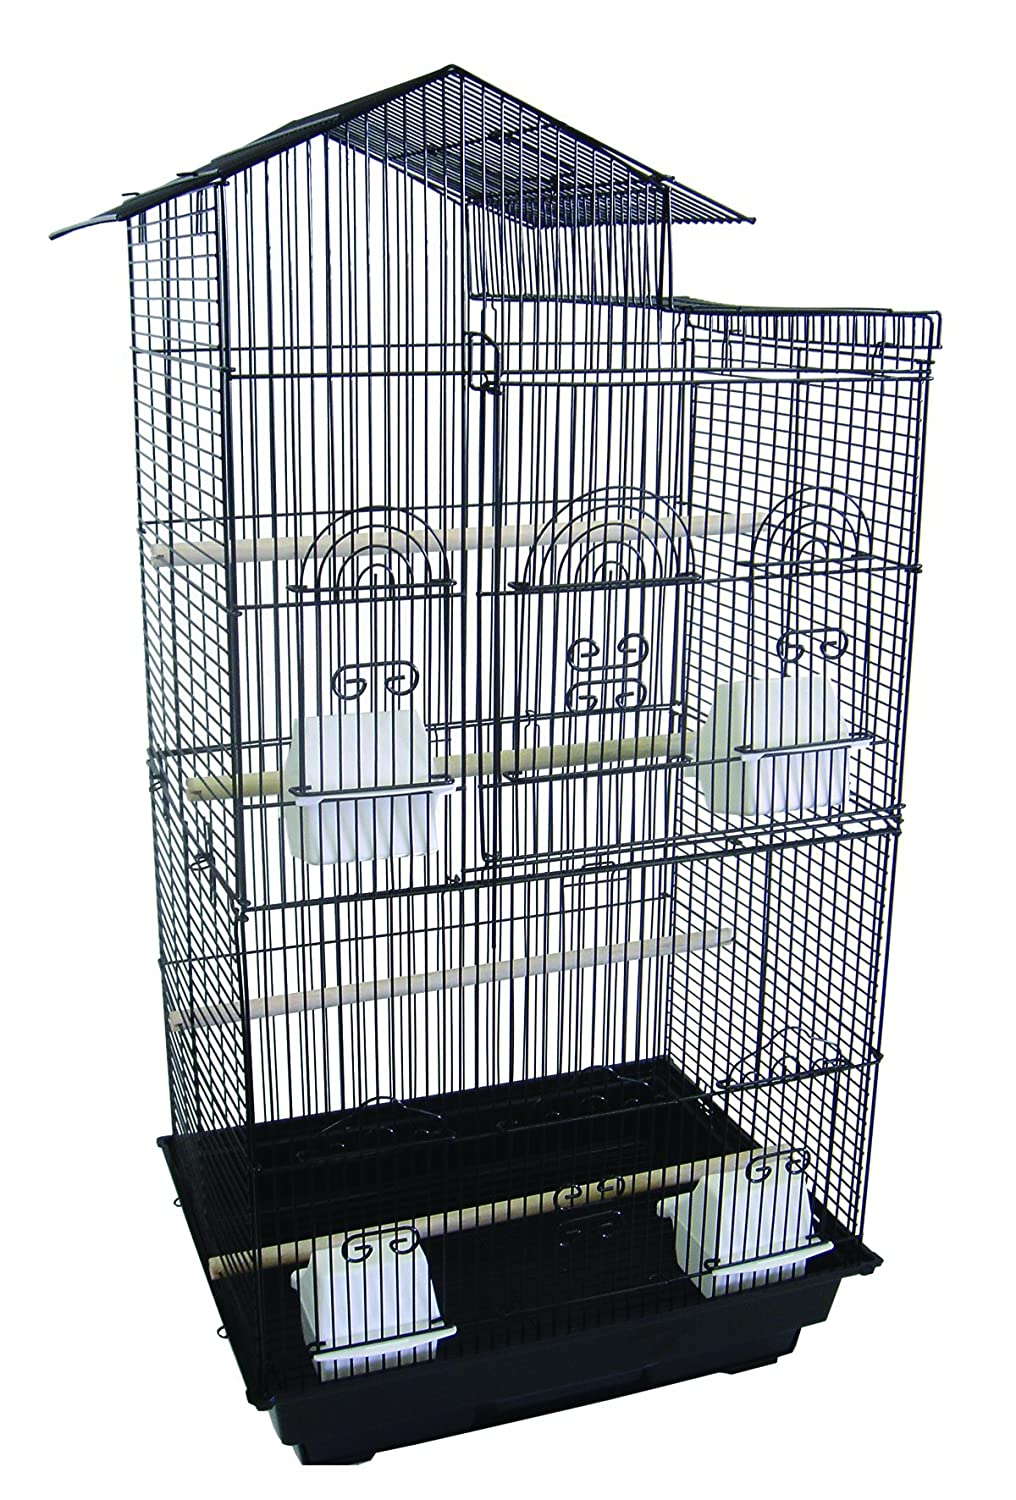 YML A6894 3/8-Inch Bar Spacing Tall Villa Top Small Bird Cage, 18-Inch by 14-Inch, Black A6894BLK